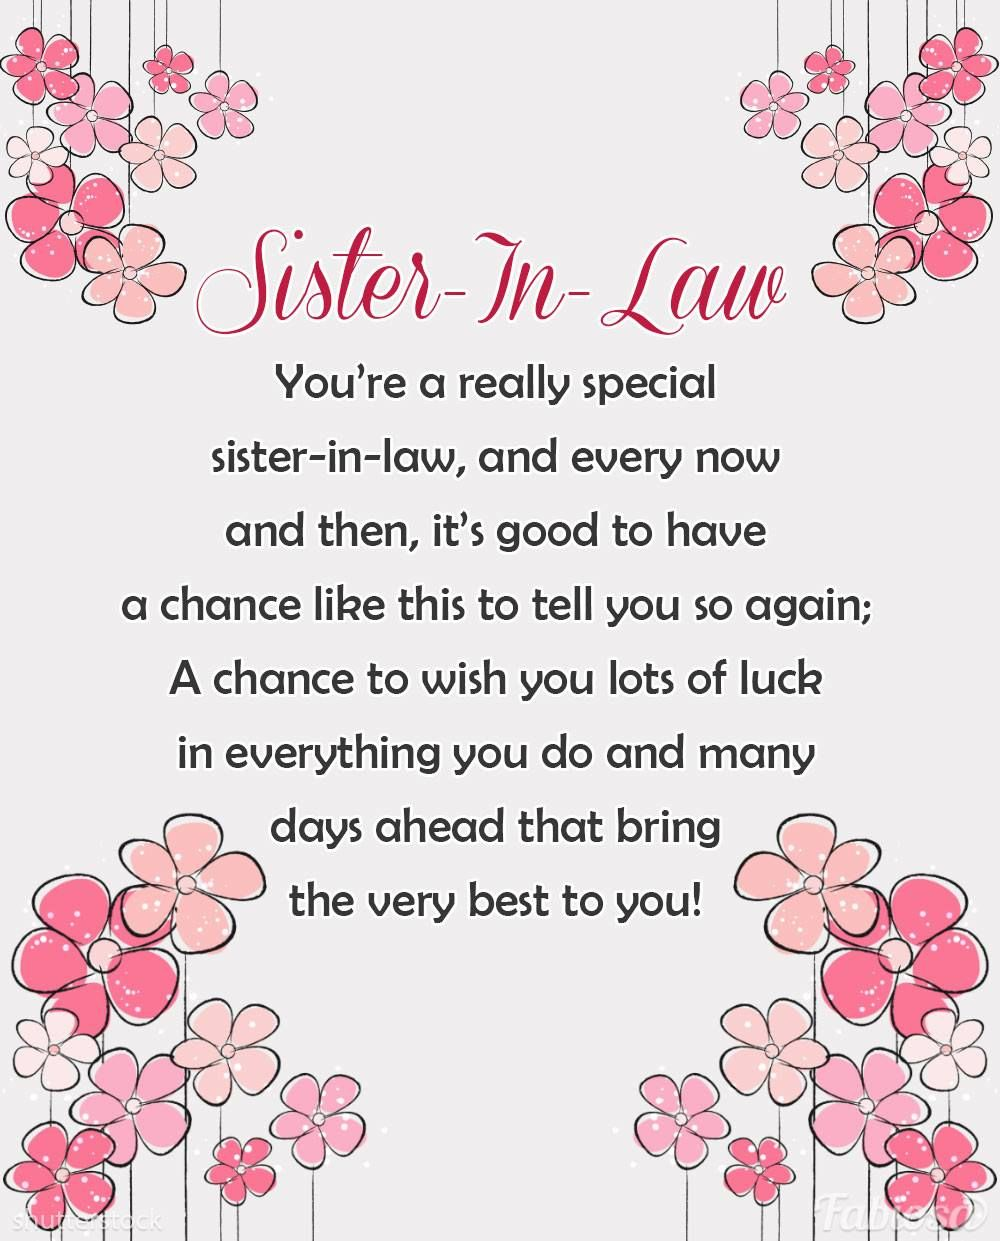 Pin by Liz Hamrick on SisterinLaw.... Sisters & Mothers